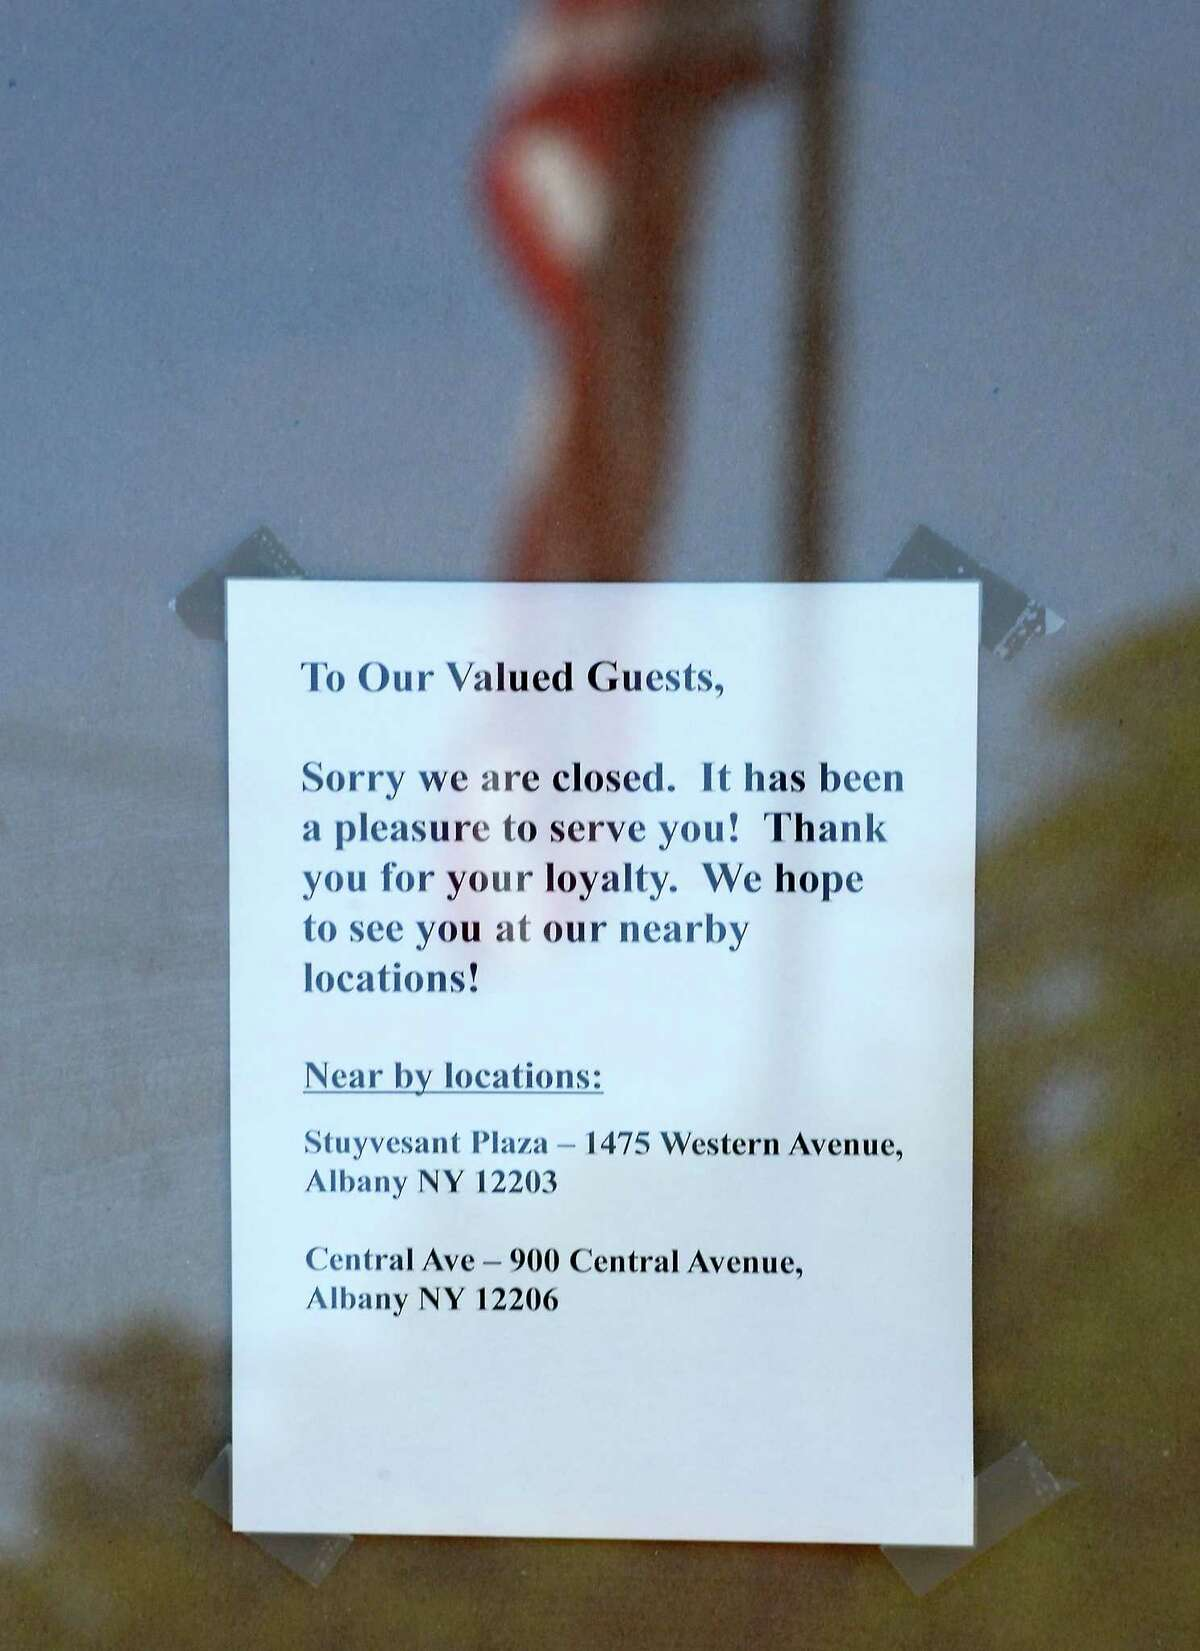 A sign on the door of Brueggers at Madison Ave. and South Allen St., Wednesday June 15, 2016 in Albany, NY. (John Carl D'Annibale / Times Union)